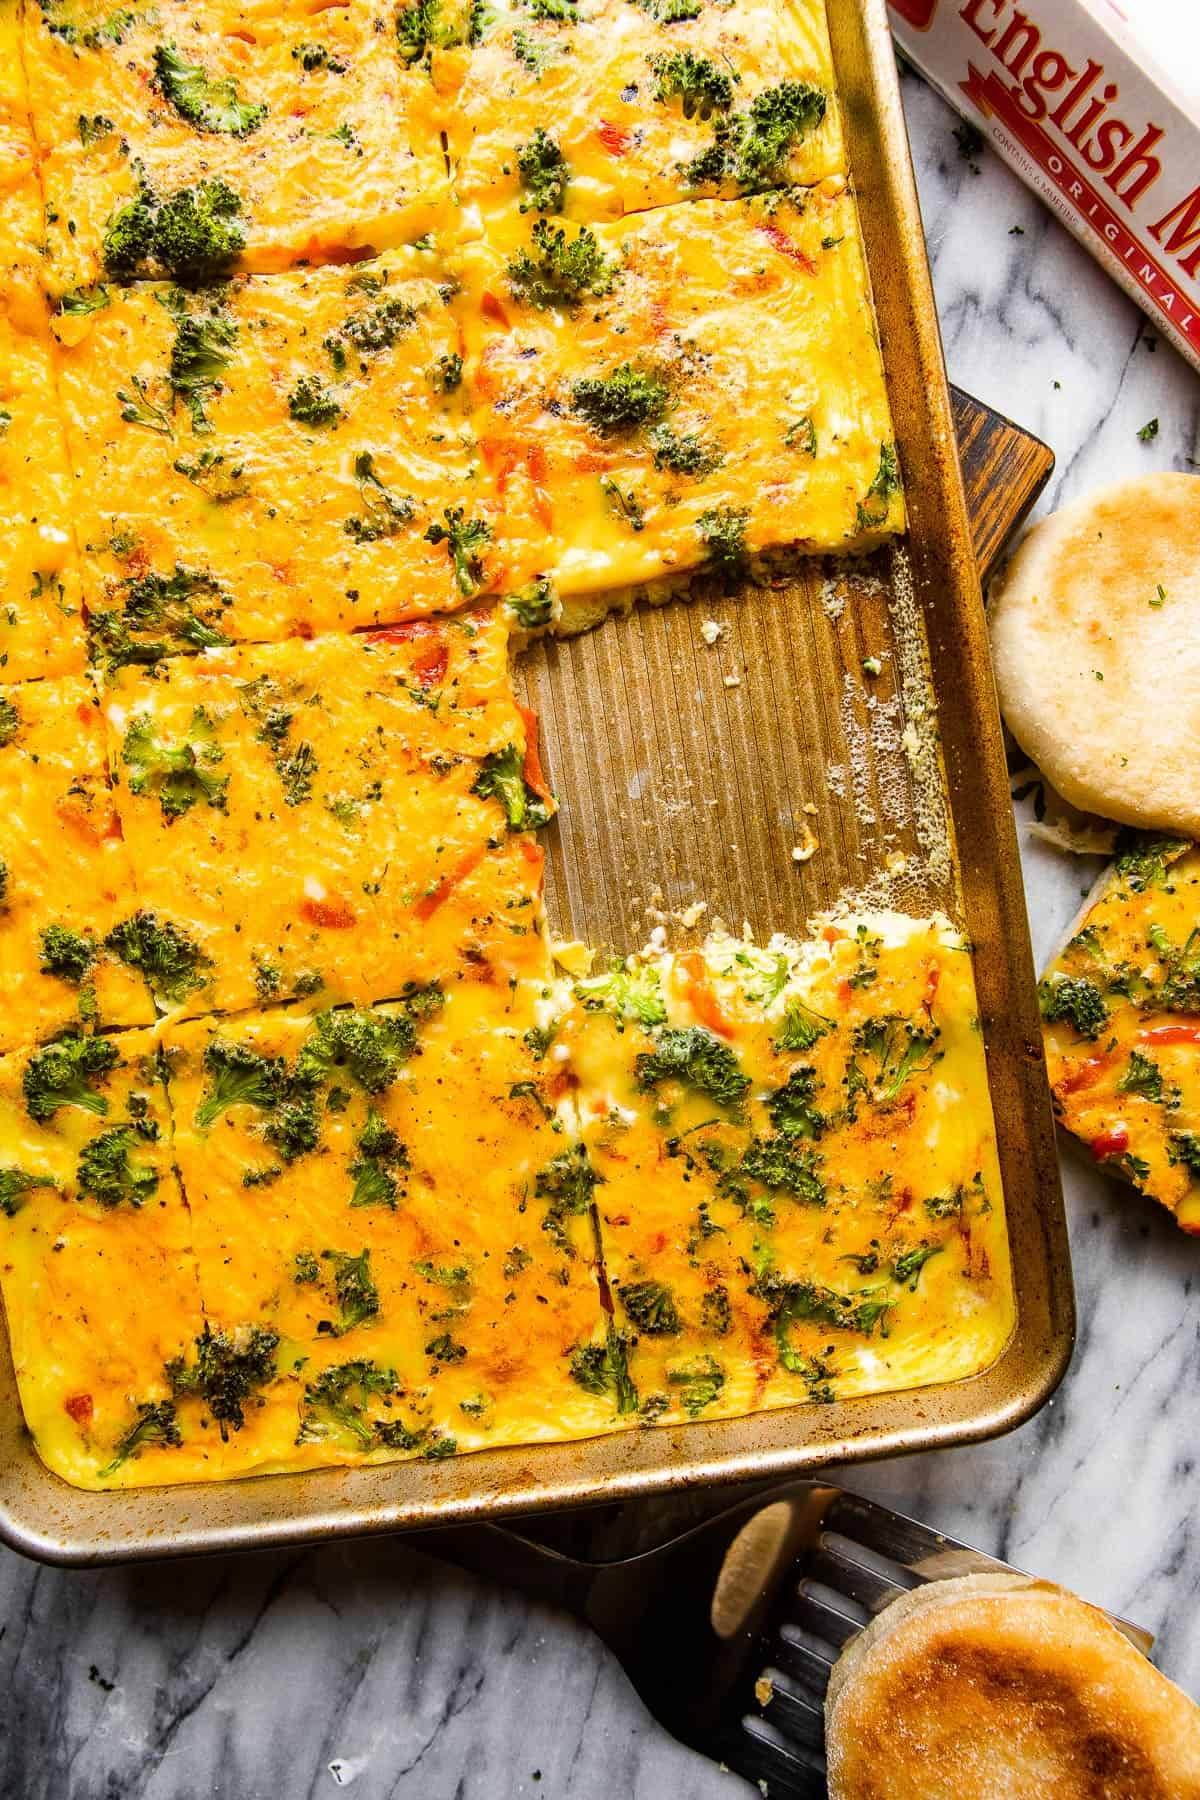 oven baked eggs on a sheet pan